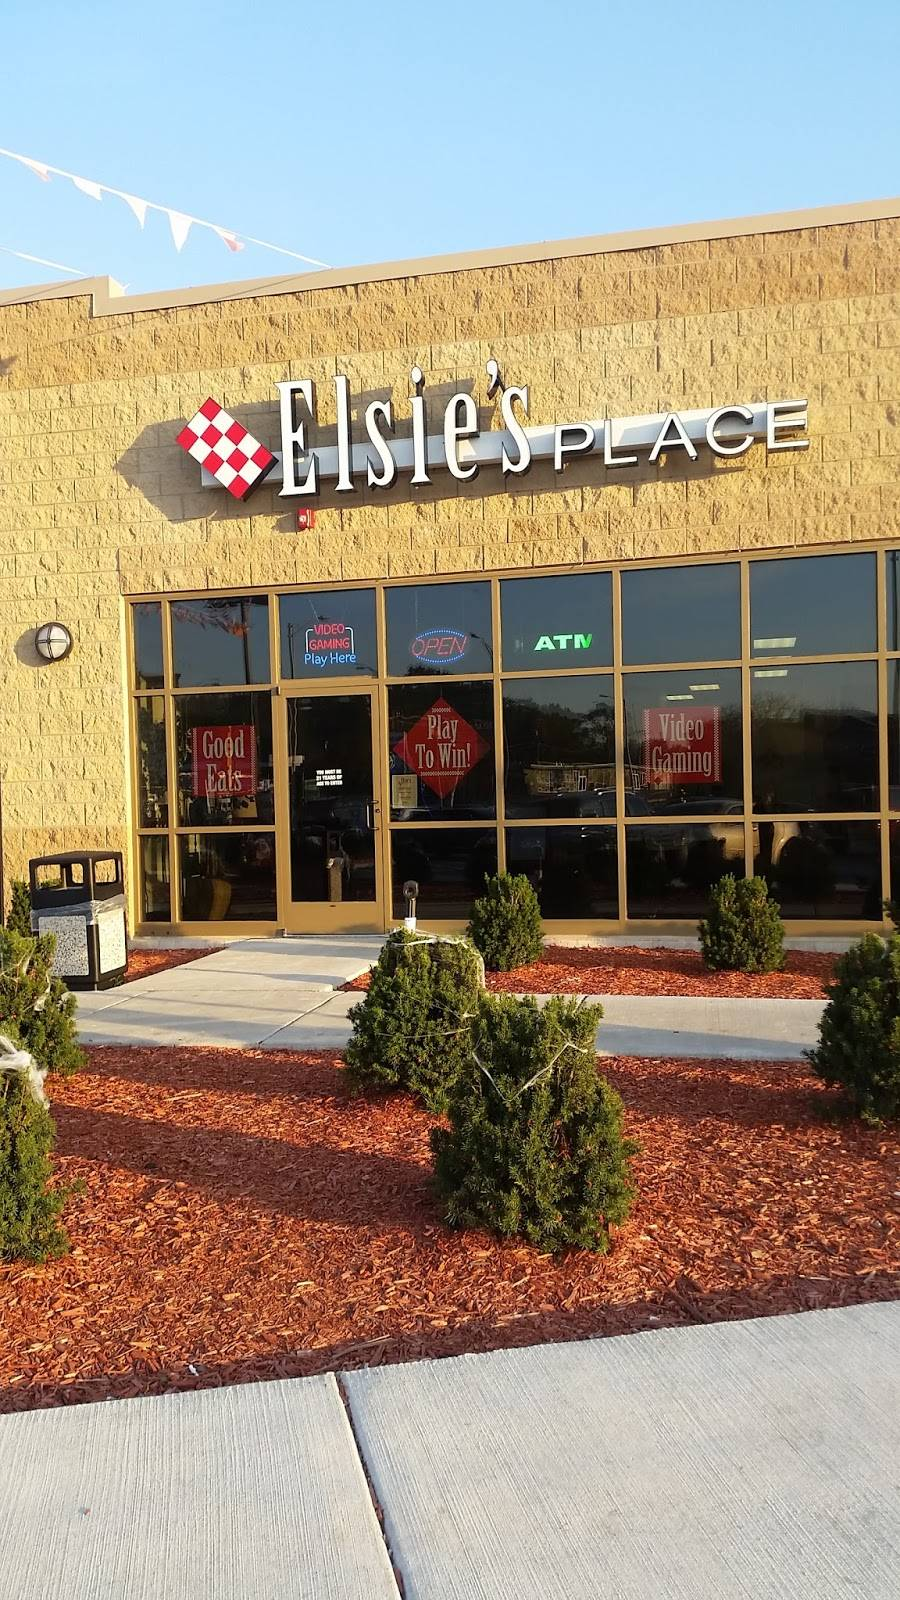 Elsies Place | cafe | 17499 Dixie Hwy b, Hazel Crest, IL 60429, USA | 7083656001 OR +1 708-365-6001